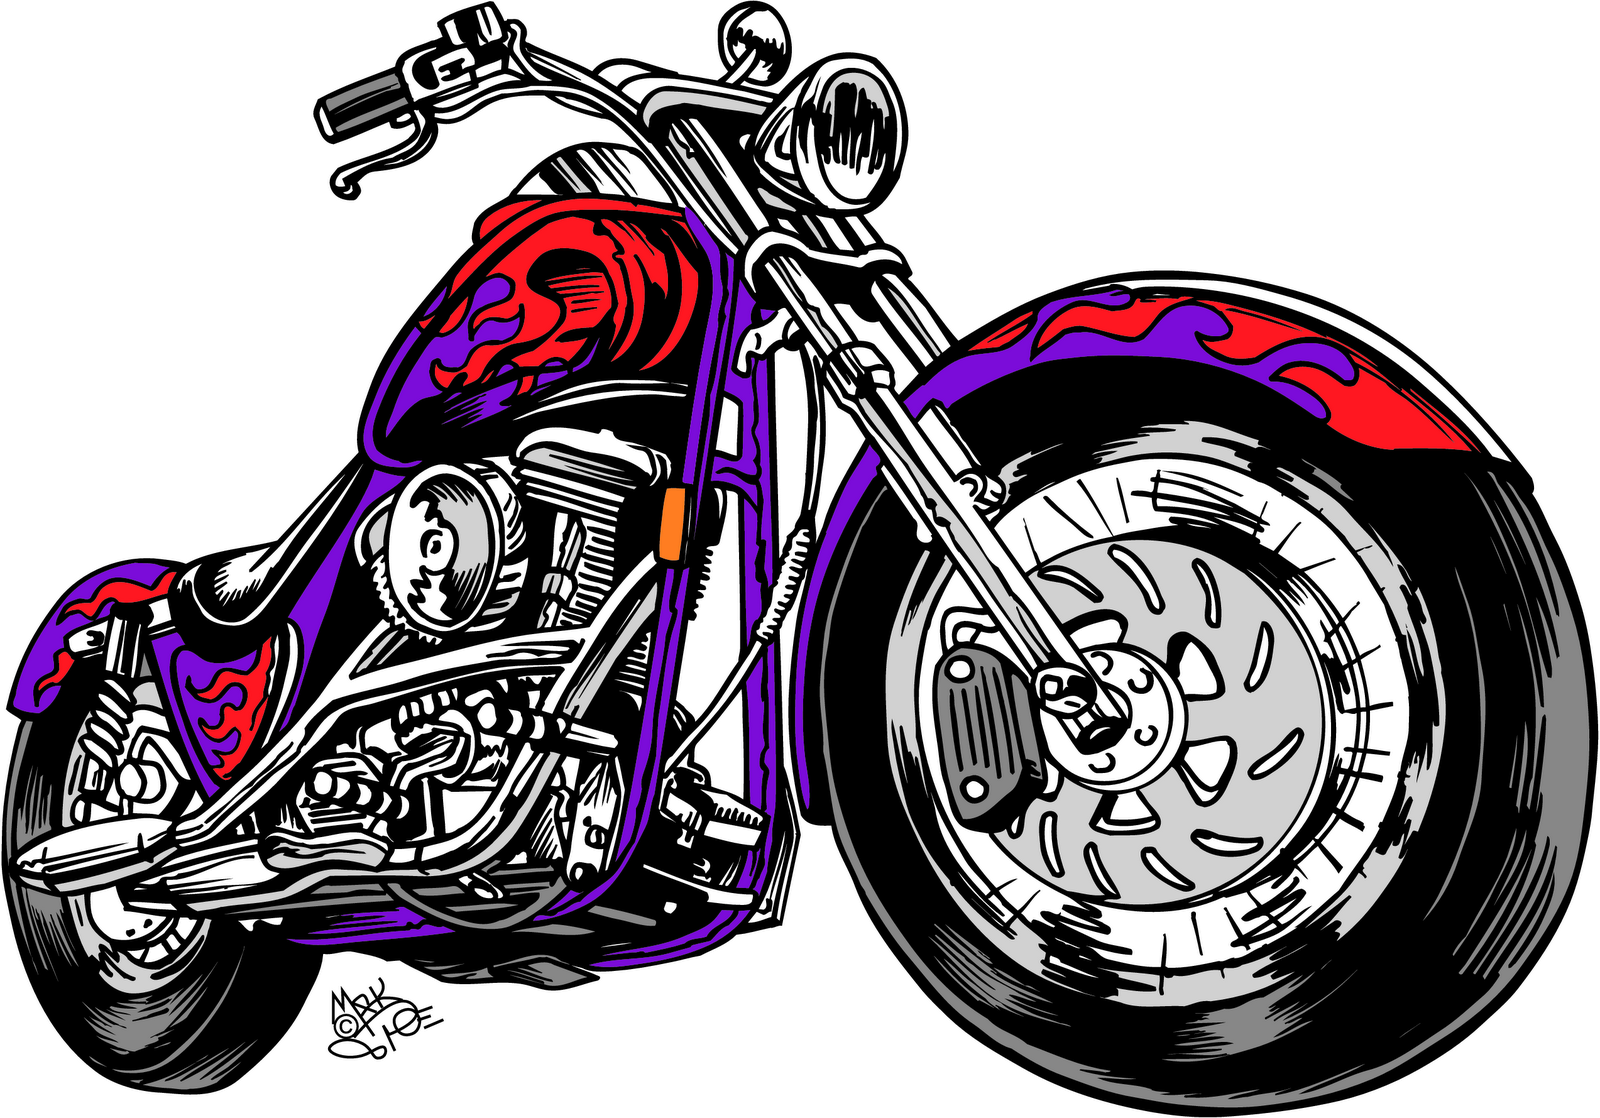 Harley davidson motorcycle clipart free graphic freeuse stock Free Motorcycle Cliparts, Download Free Clip Art, Free Clip Art on ... graphic freeuse stock